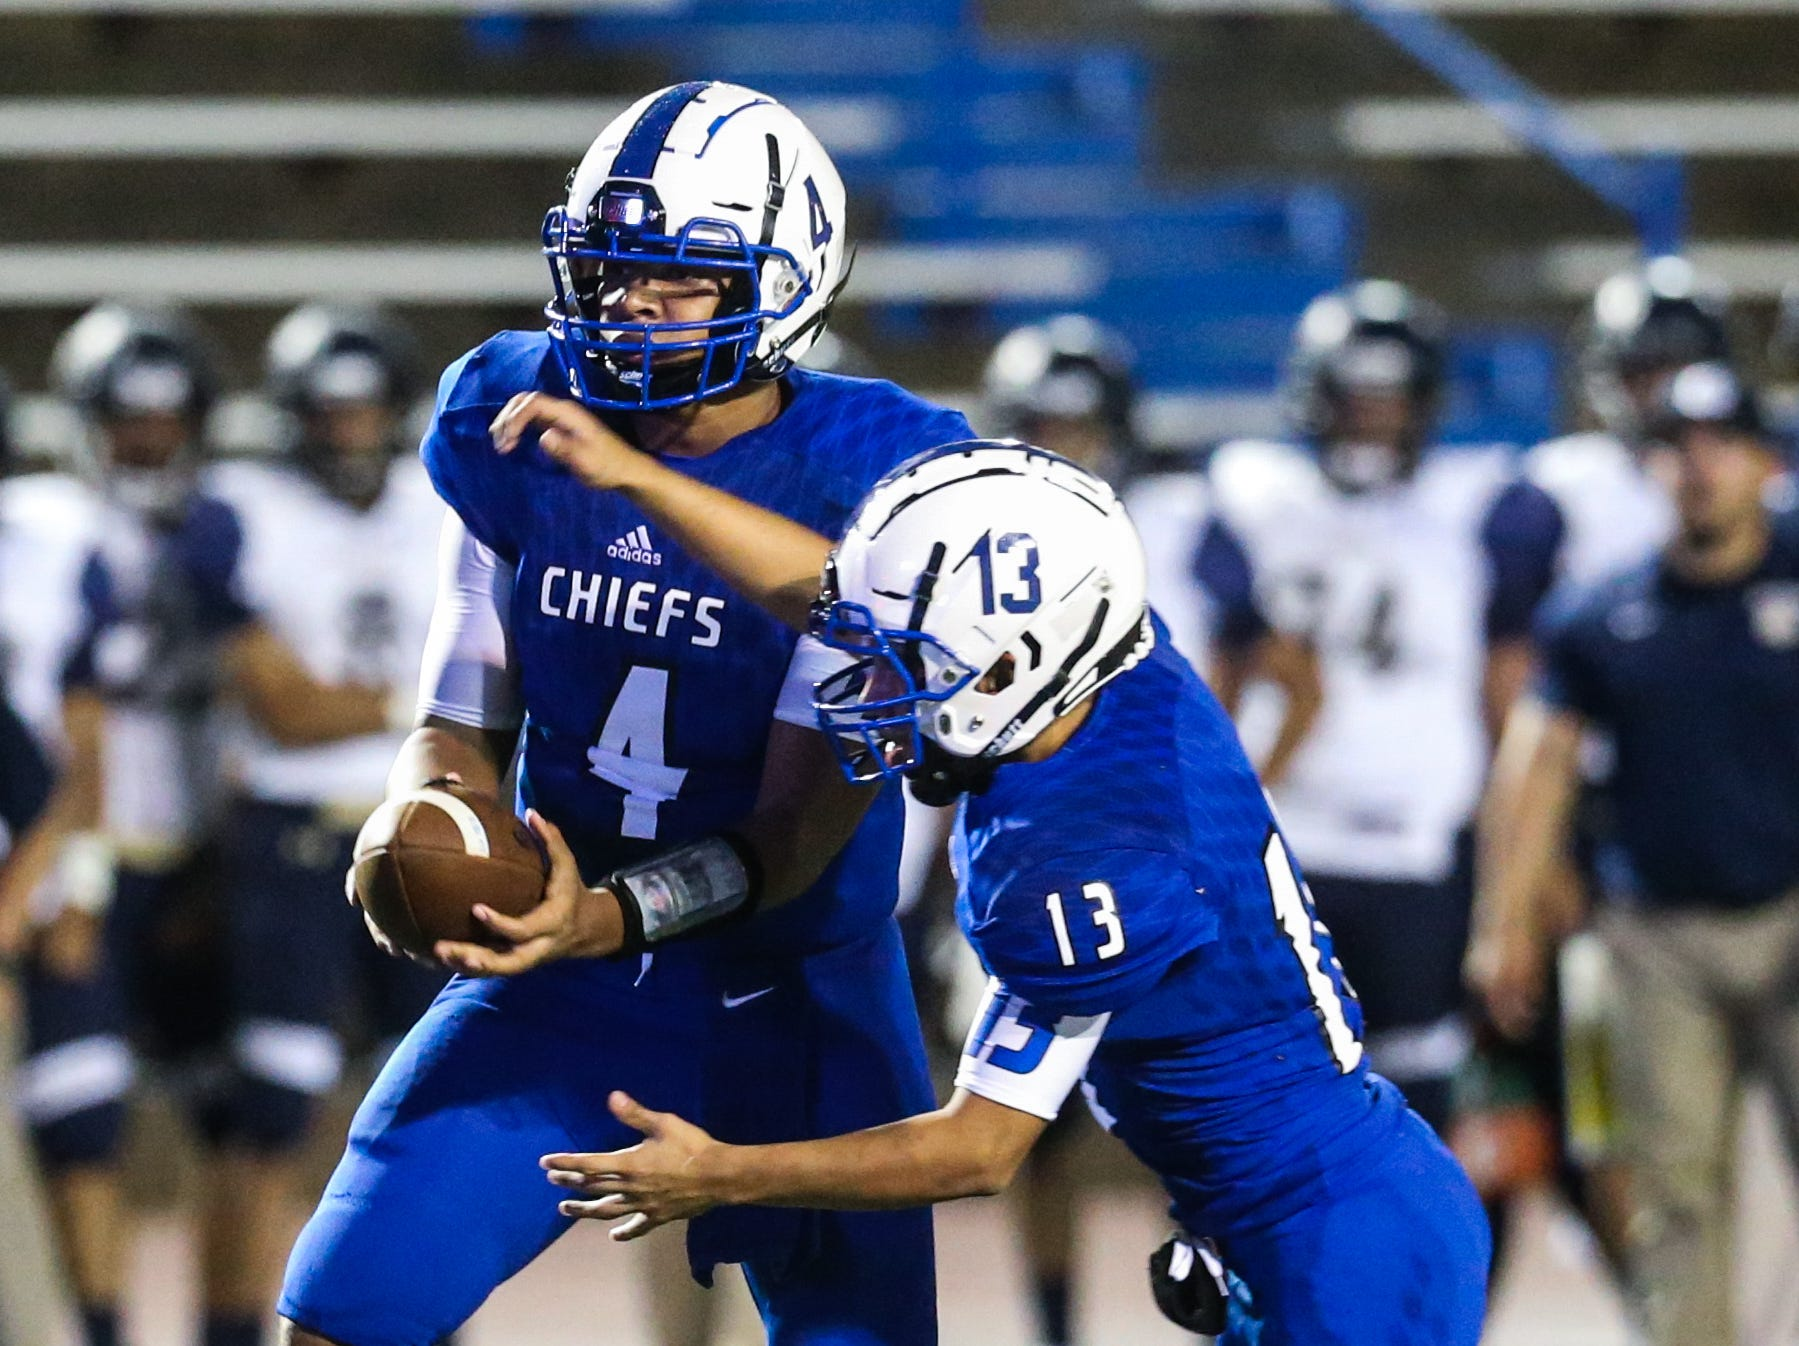 Lake View's Kendall Blue passes the ball to Rudy Martinez during the game against Fabens Friday, Sept. 7, 2018, at San Angelo Stadium.